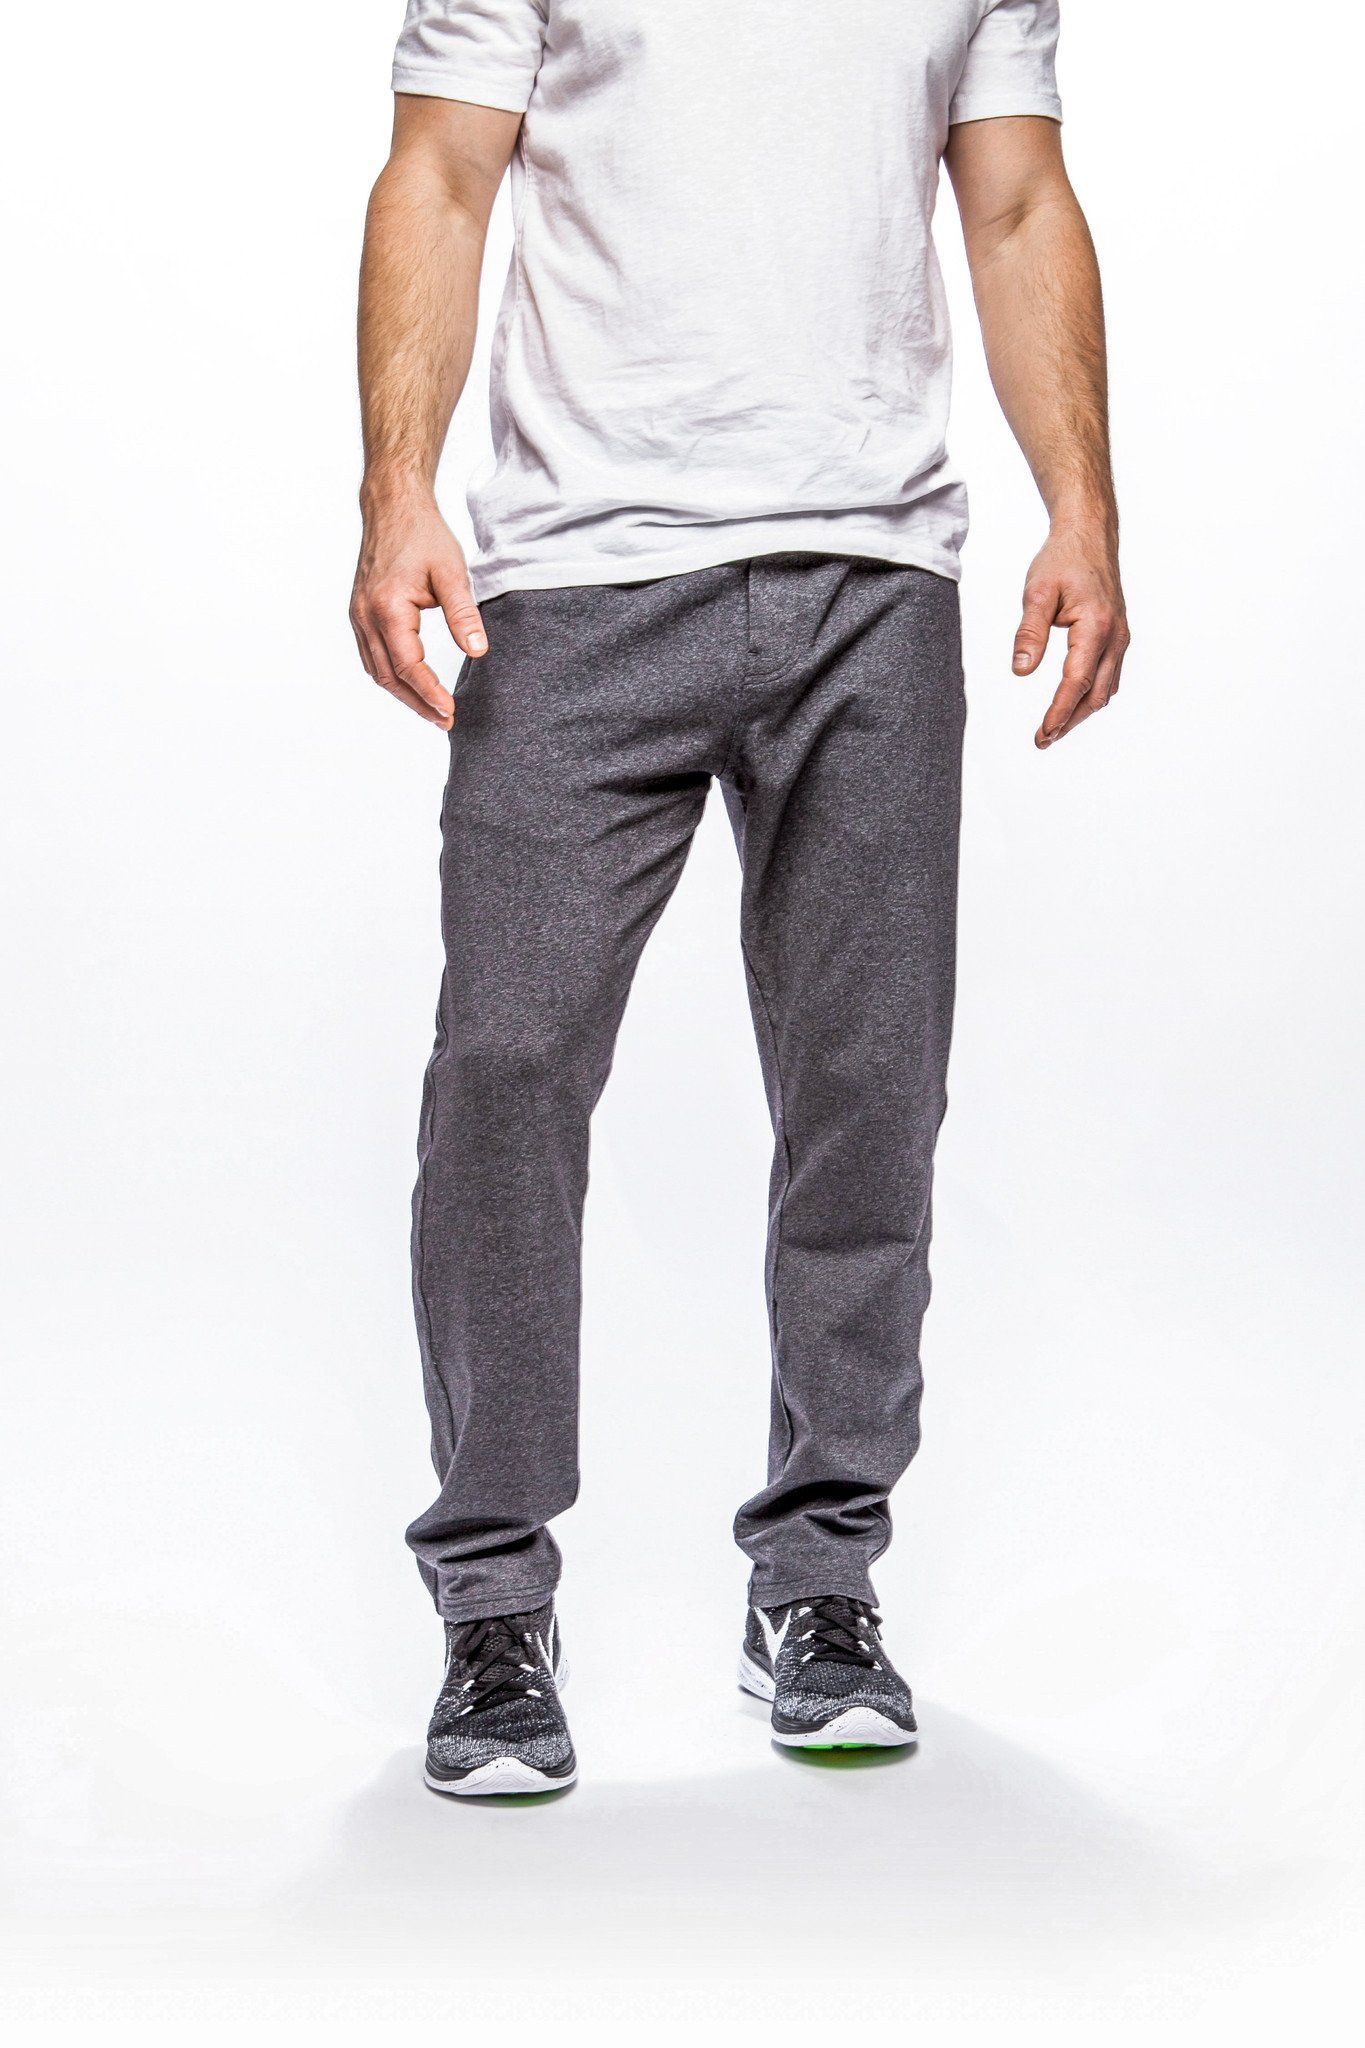 ee9e34b0ad6 Public Rec® All Day Every Day Pant - Men s Technical Pants